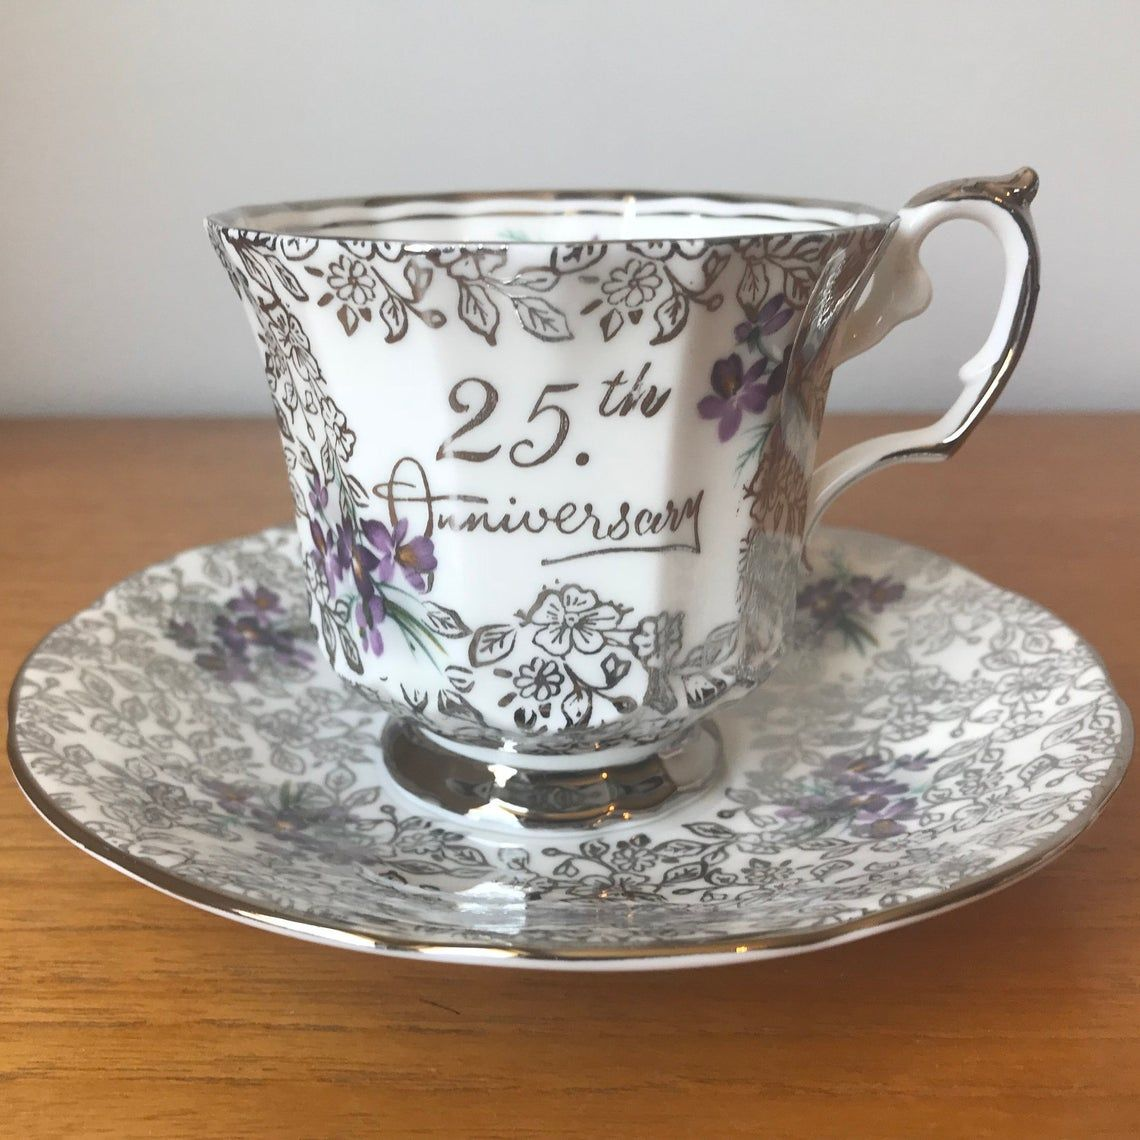 Elizabethan Tea Cup and Saucer, Silver Floral Chintz with Purple Violets Bone China Teacup and Saucer, 25th Wedding Anniversary Gift Idea